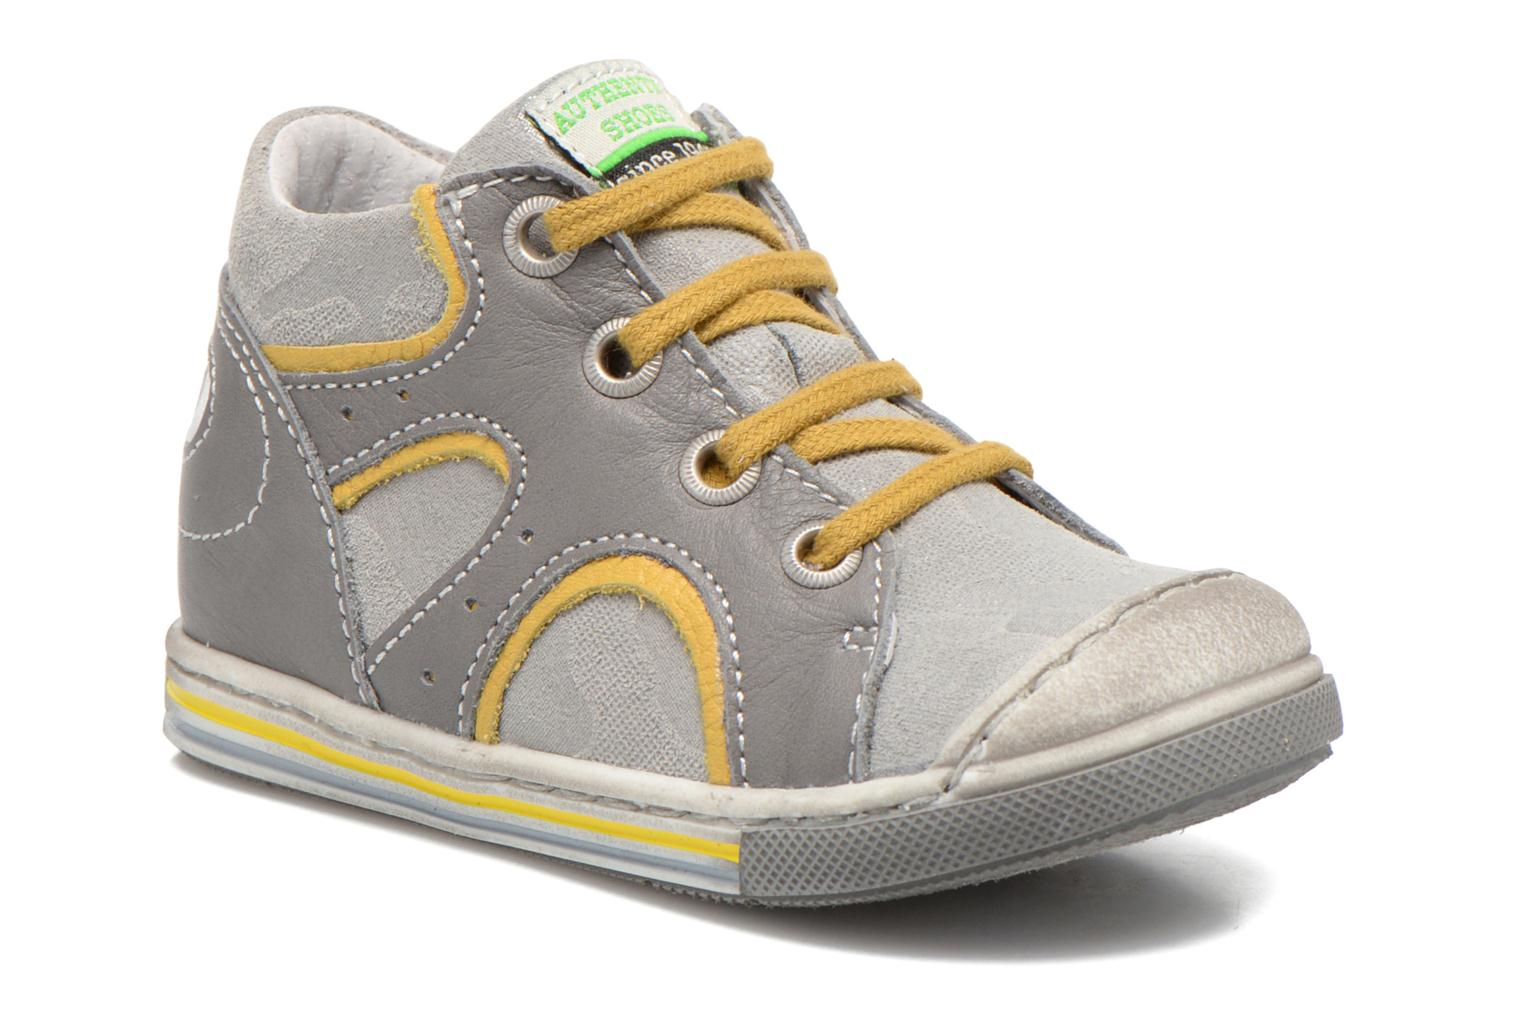 Sneakers Vertou by Little Mary